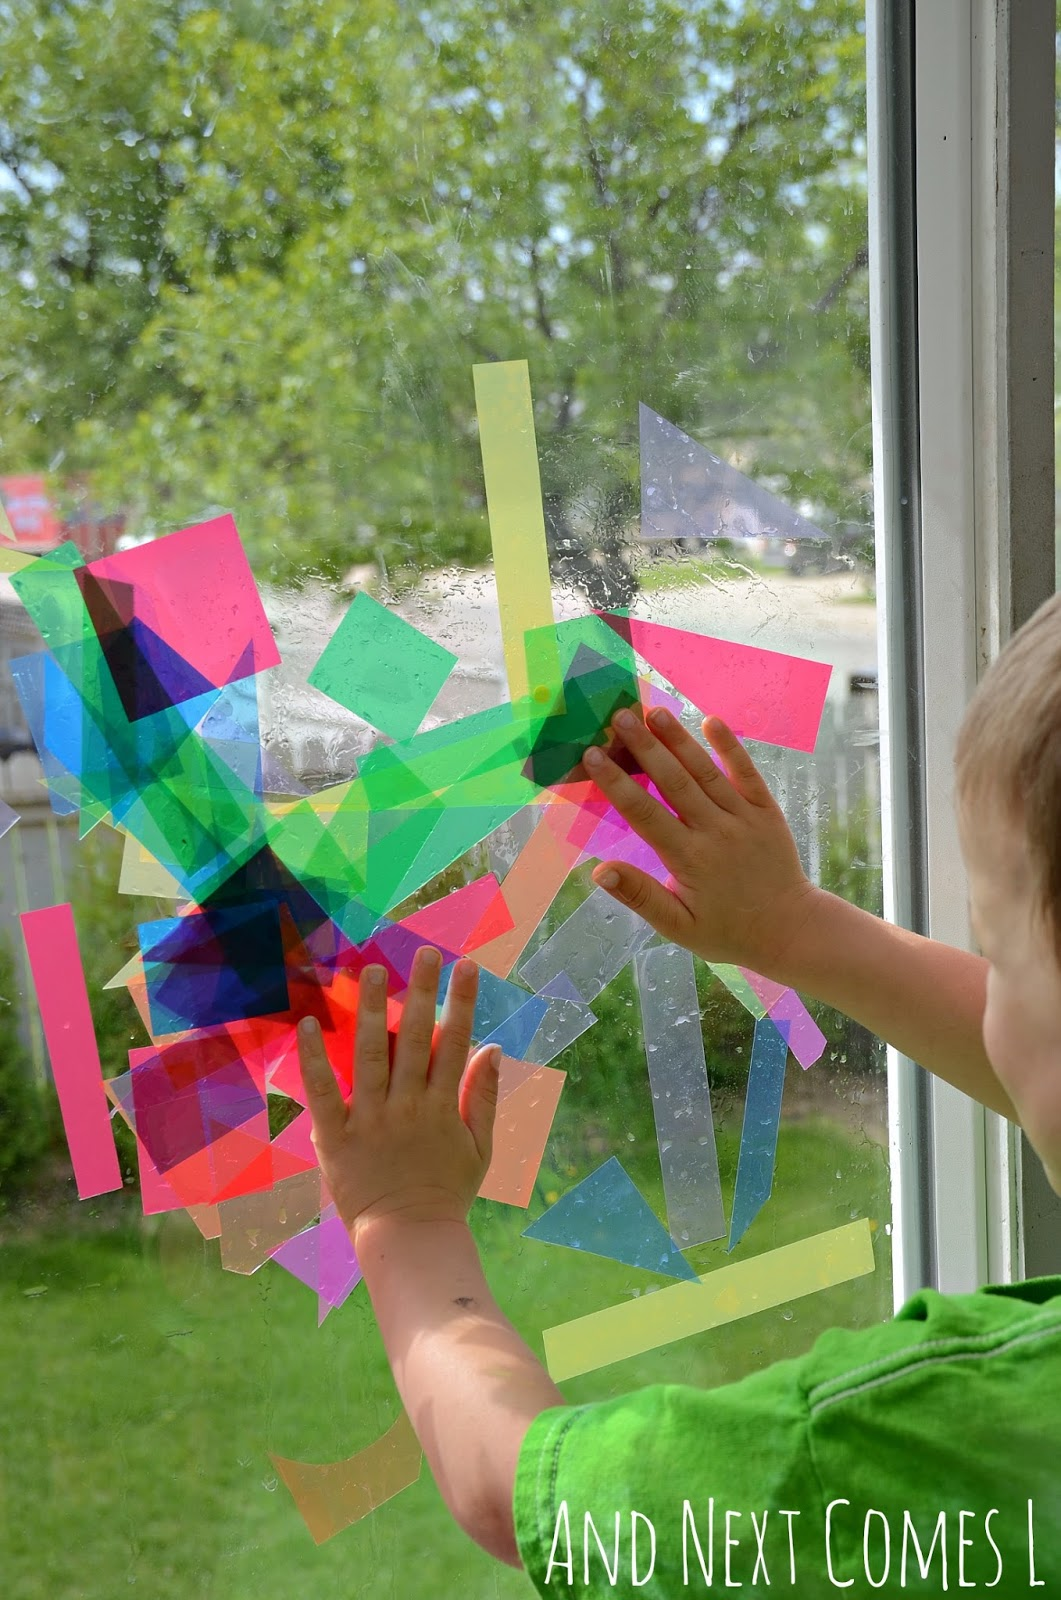 Fun Activities To Do With Your Kids Diy Kids Crafts And Games